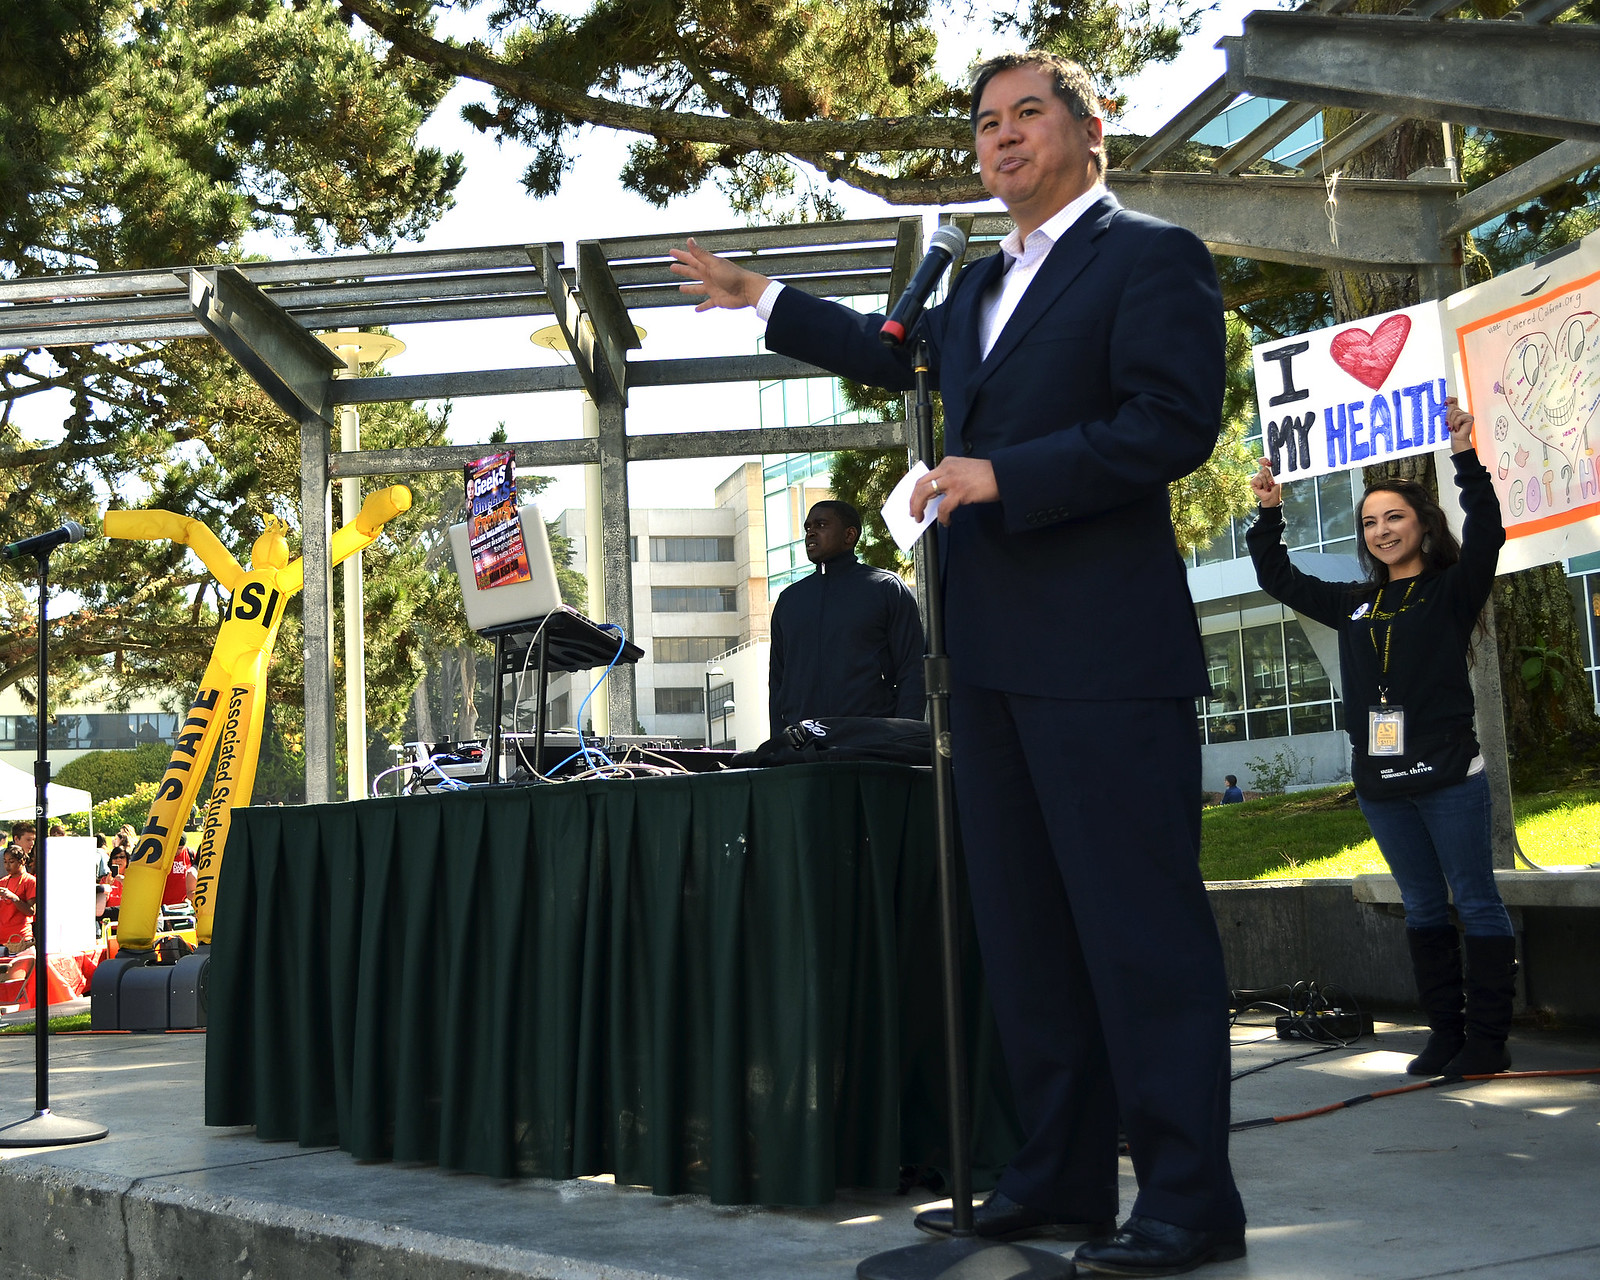 Assemblyman Philip Y. Ting (District 19) speaks about the Affordable Care Act to students at Malcolm X Plaza at SF State, Thursday, Oct. 10, 2013. Photo by Amanda Peterson / Xpress